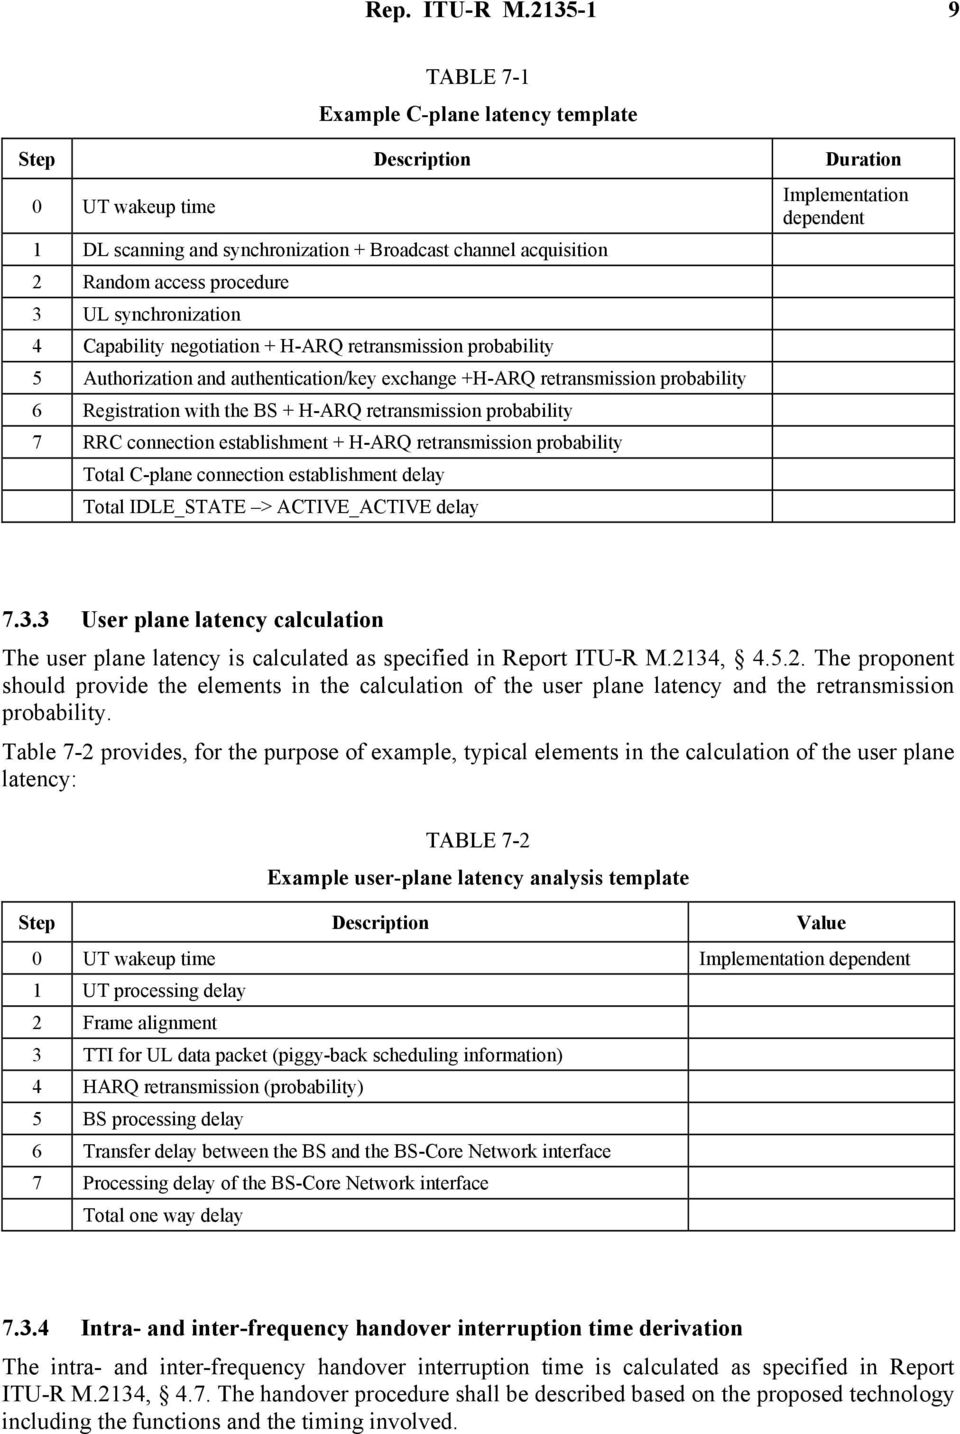 Guidelines for evaluation of radio interface technologies